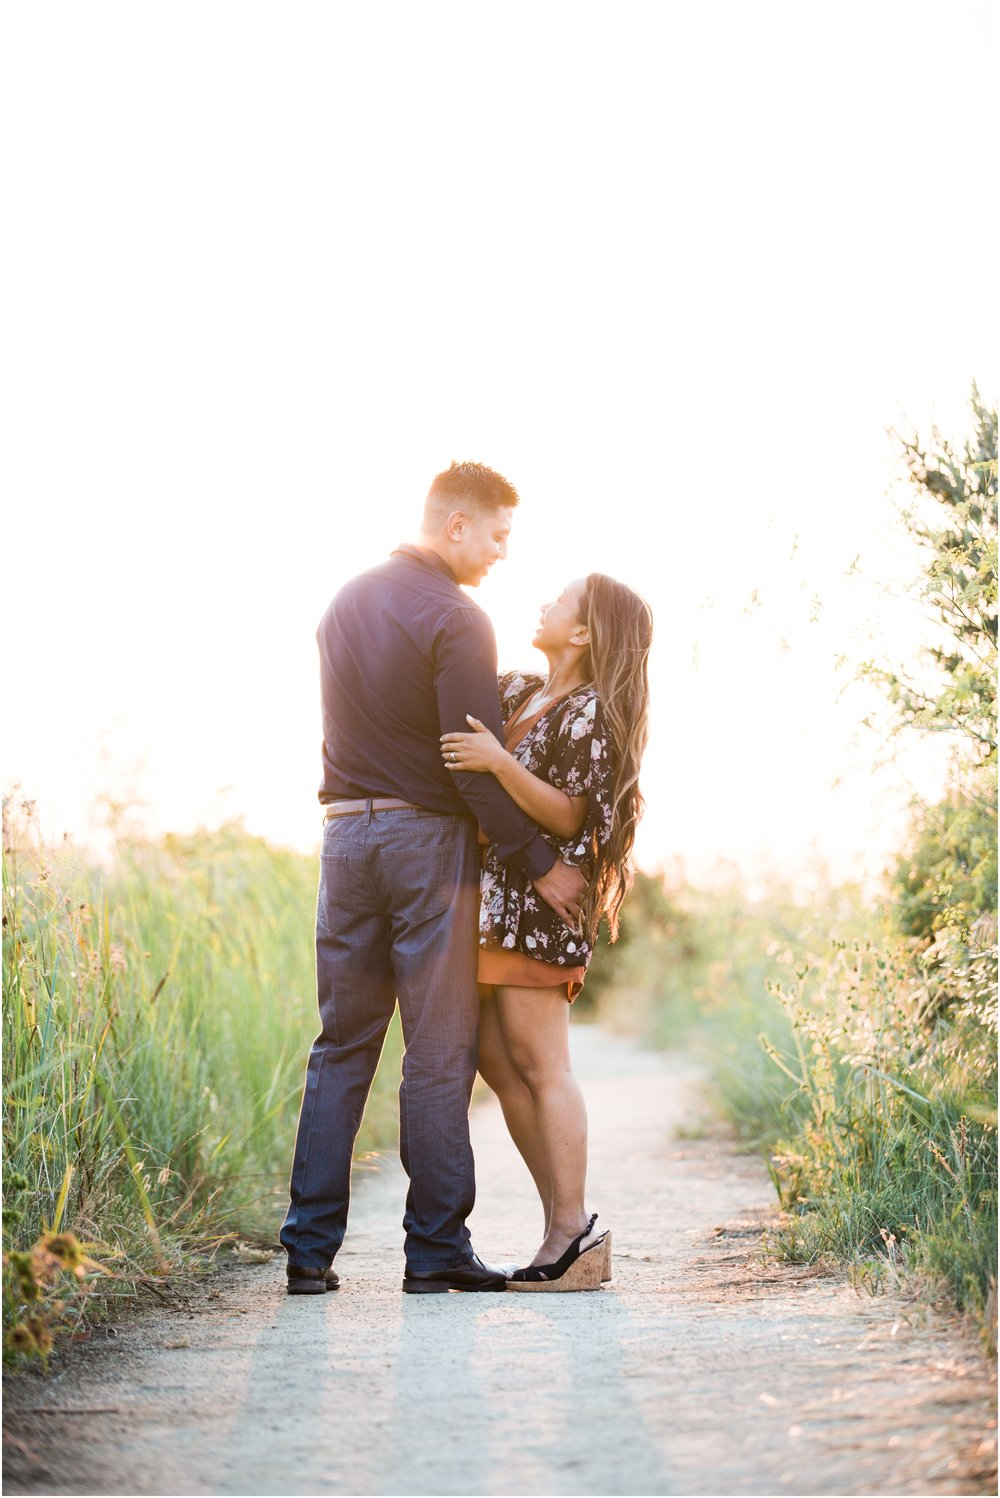 Willow Glan & Alviso Marina engagement pictures by Briana Calderon Photography_2116.jpg